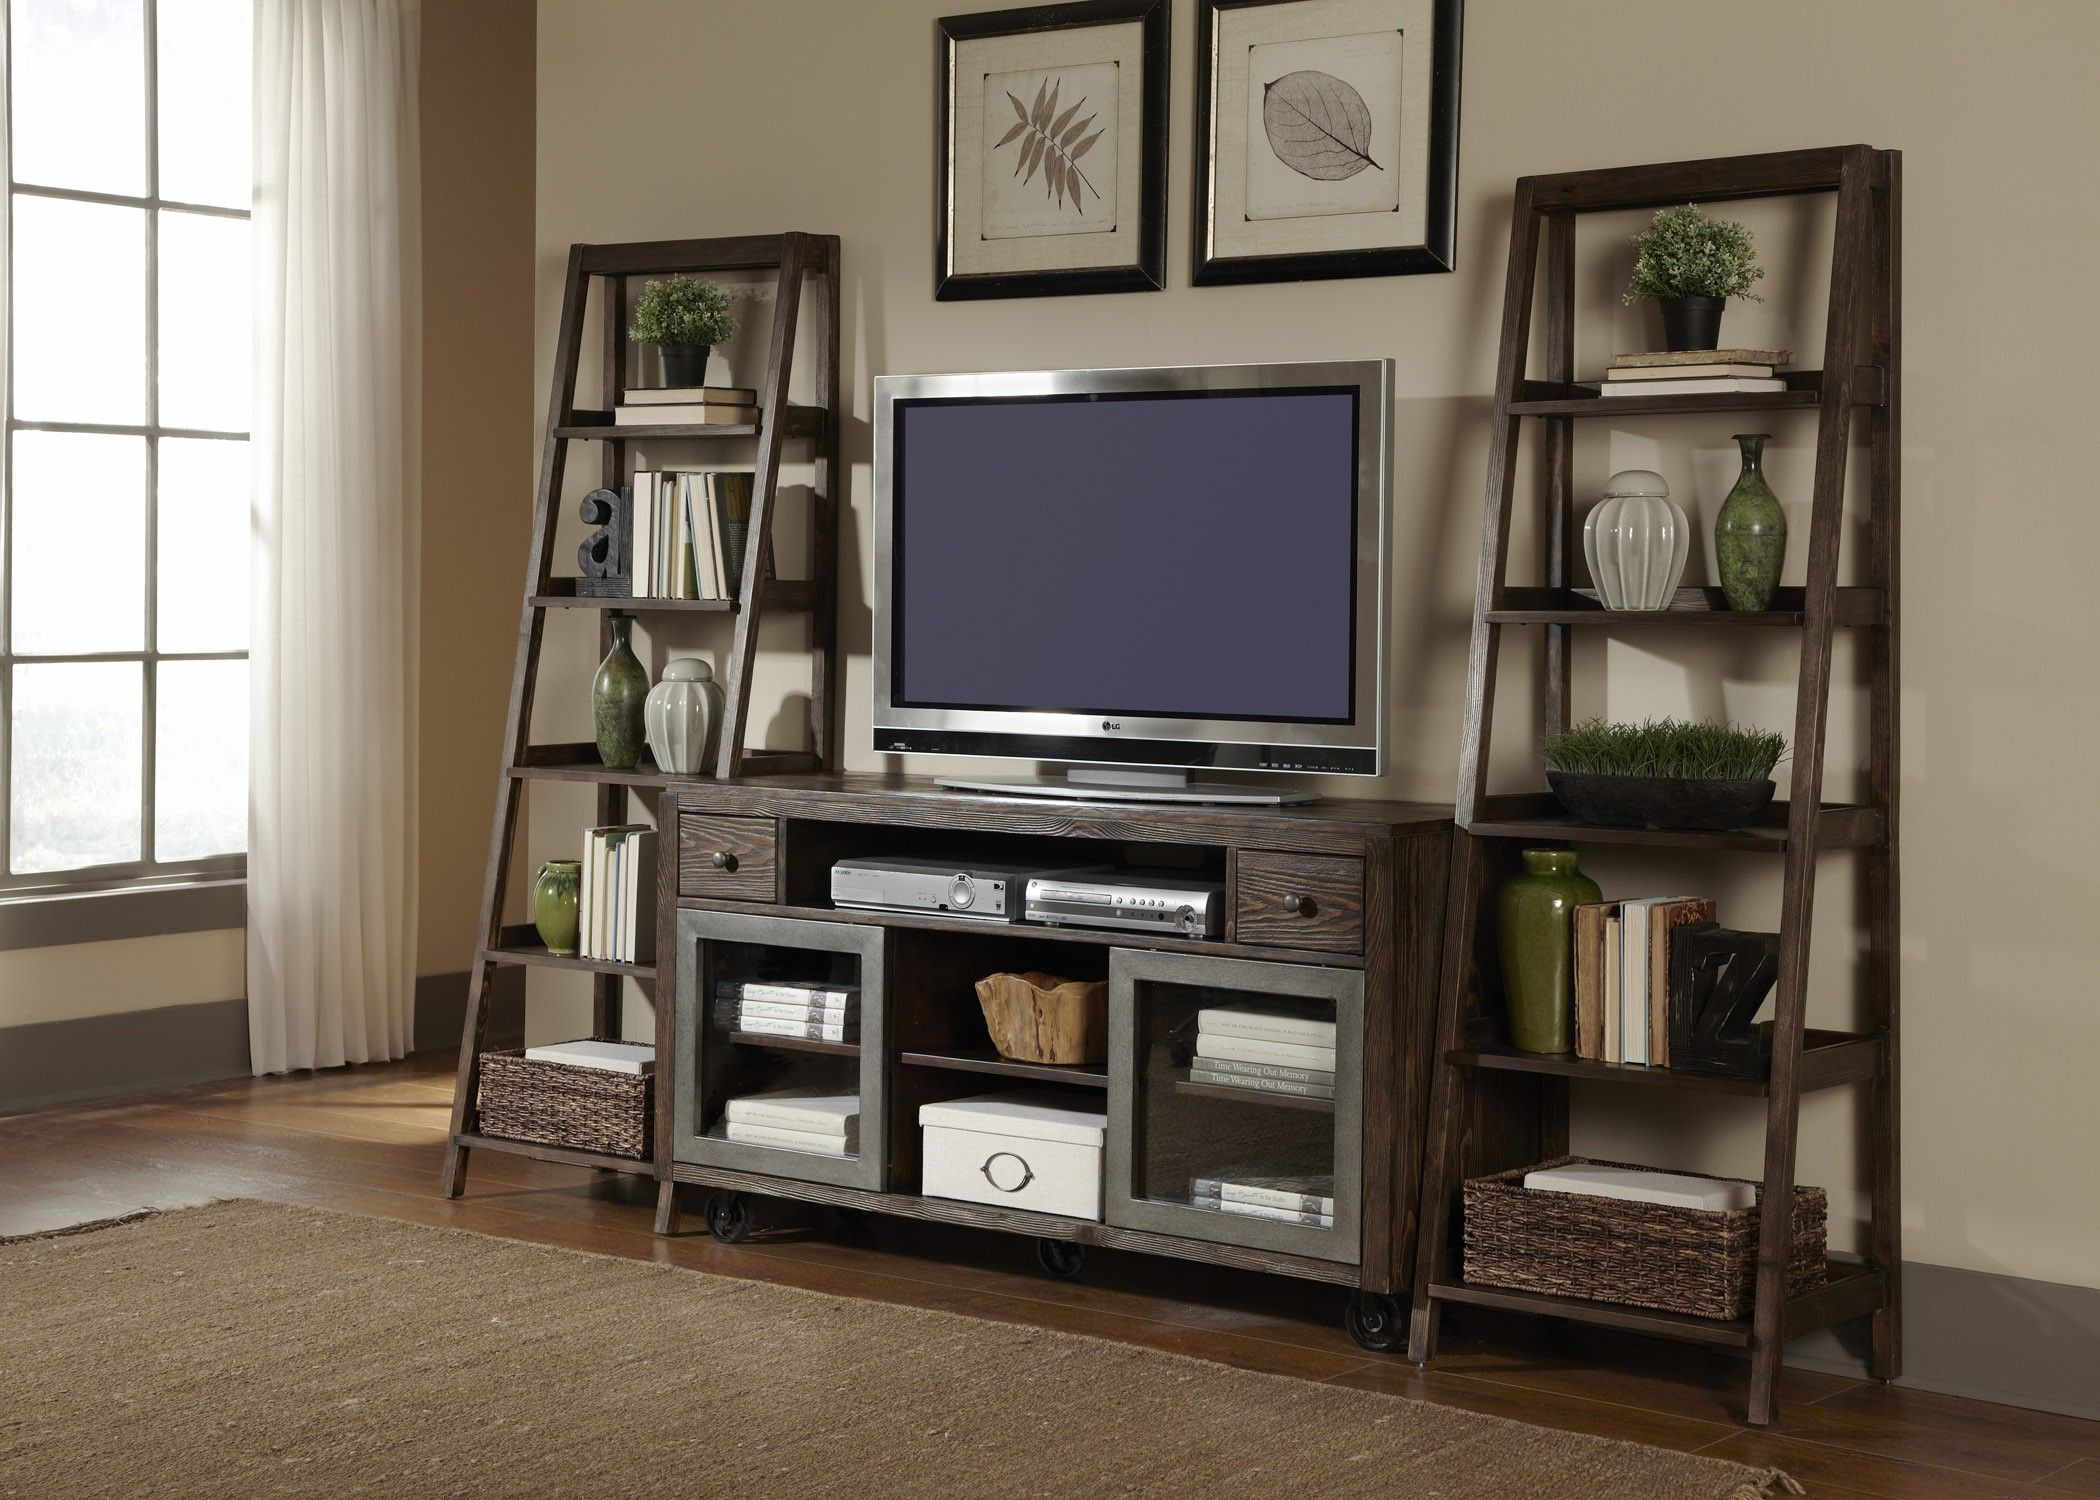 best 25+ entertainment centers ideas on pinterest | media center